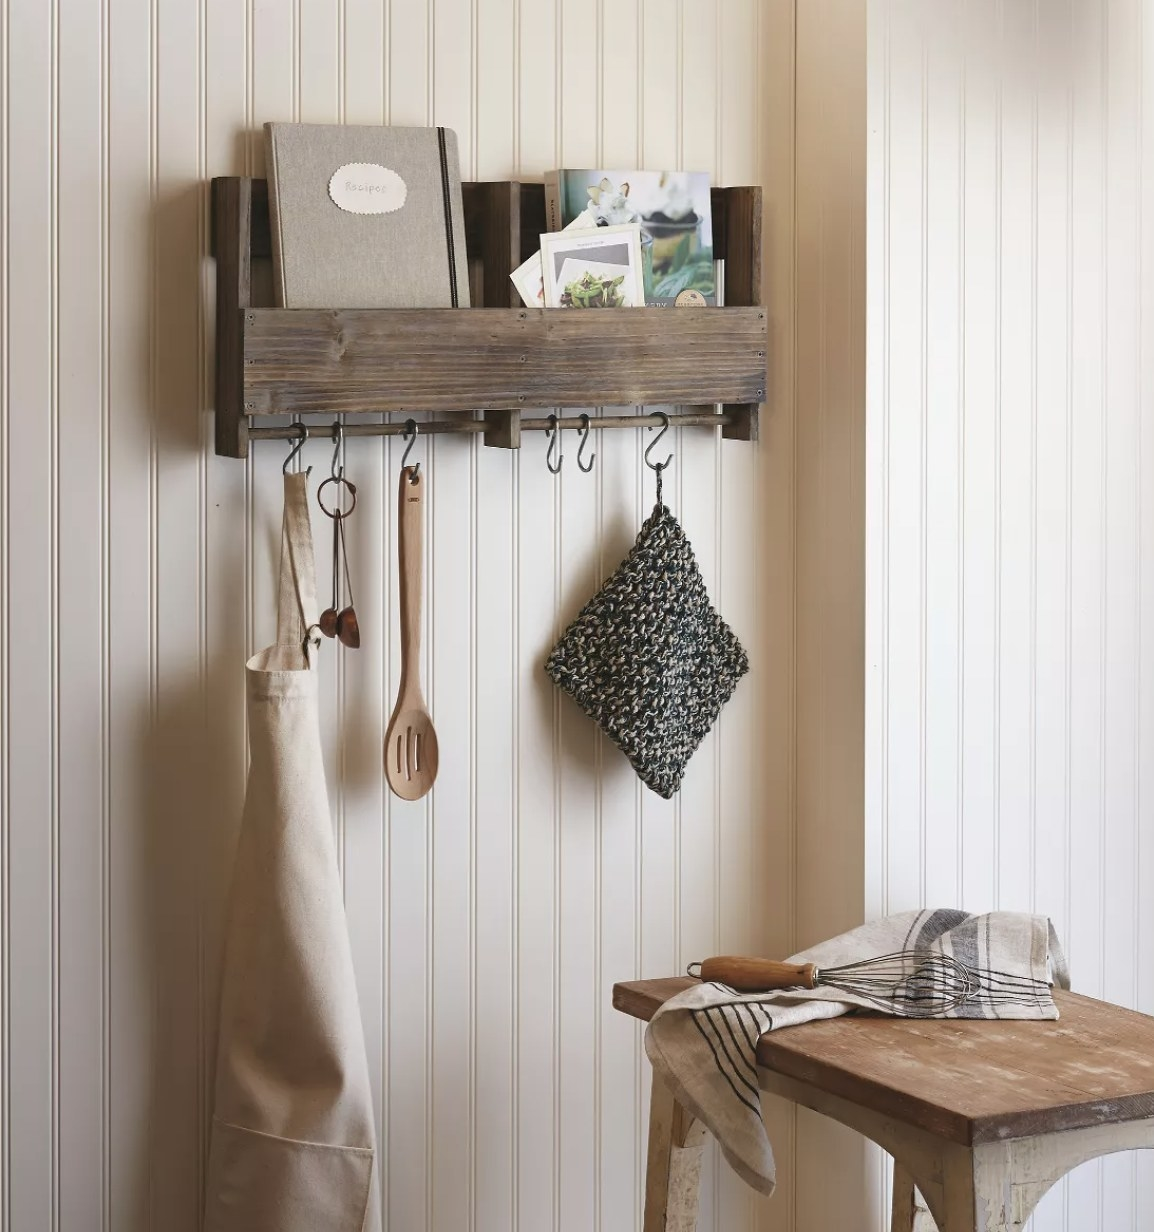 A wooden shelf attached to a wall with a bar to hang things from